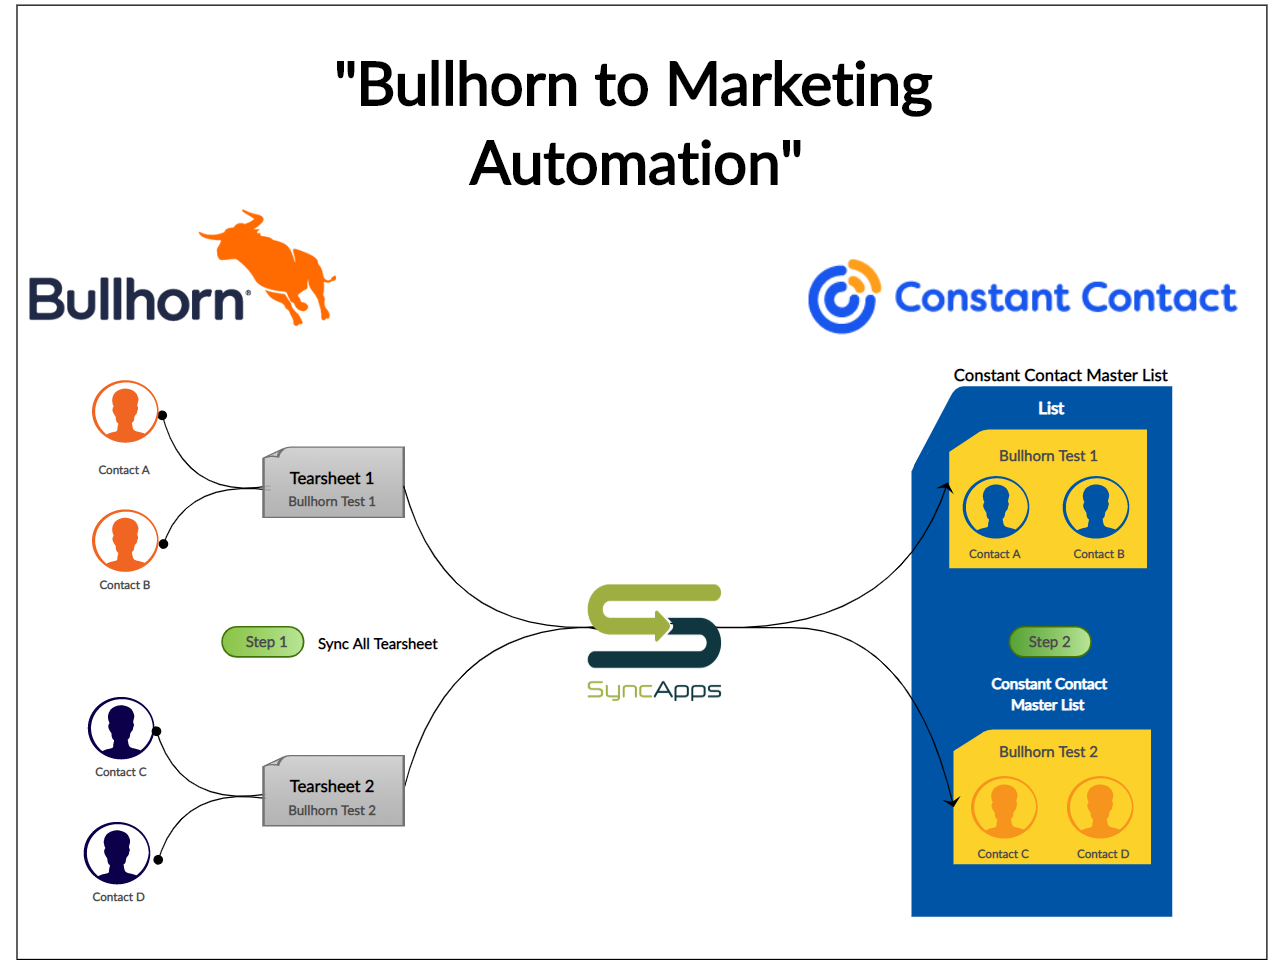 Bullhorn-to-Constant-Contact-Marketing-Automation-Creately.png